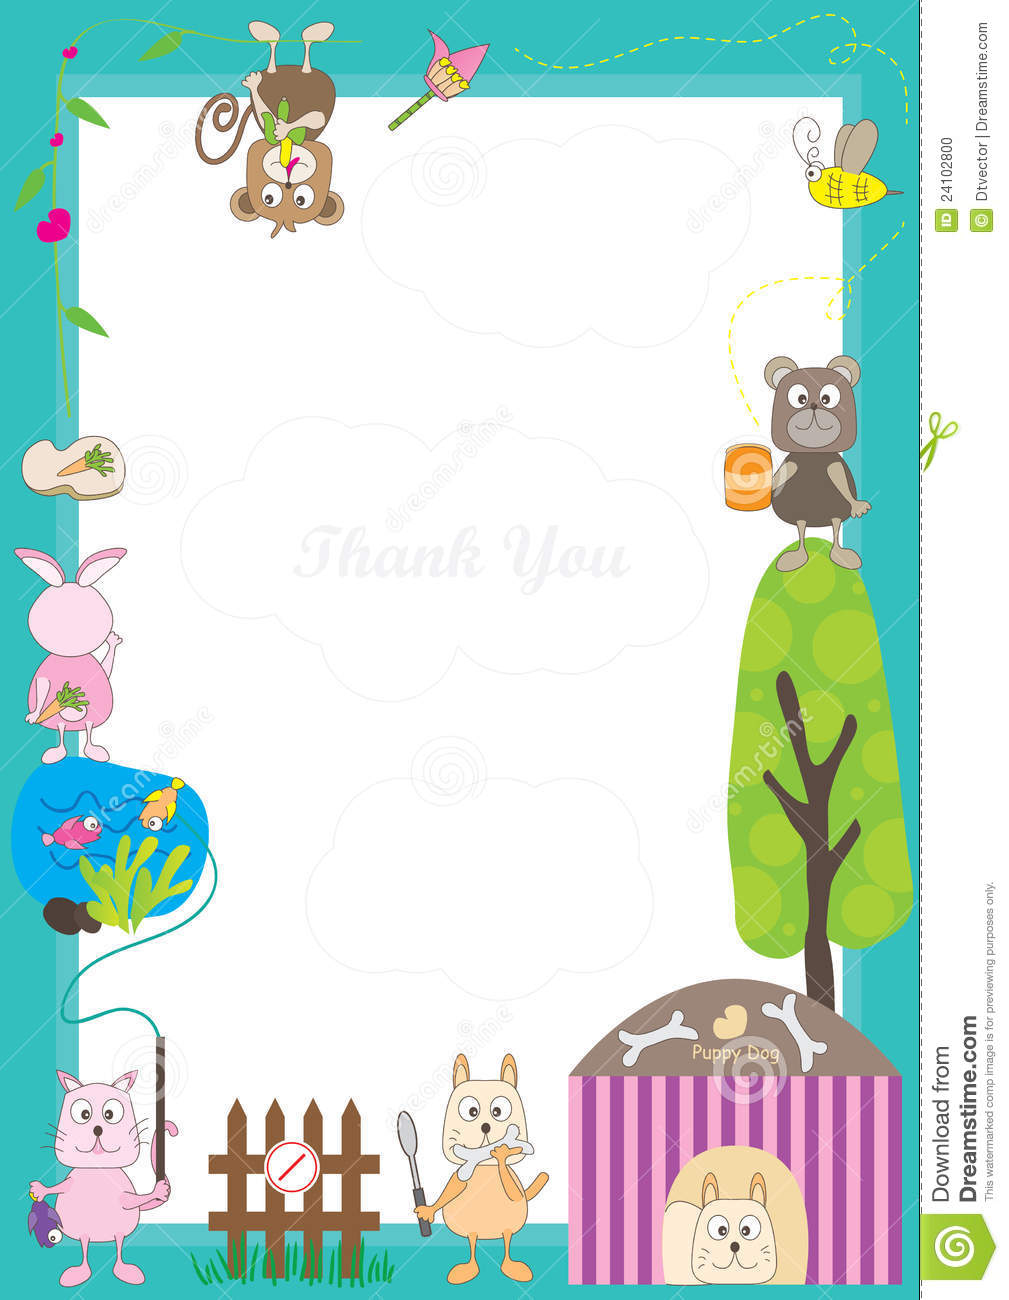 Animals Story Frameeps Stock Vector Image Of Banner 24102800